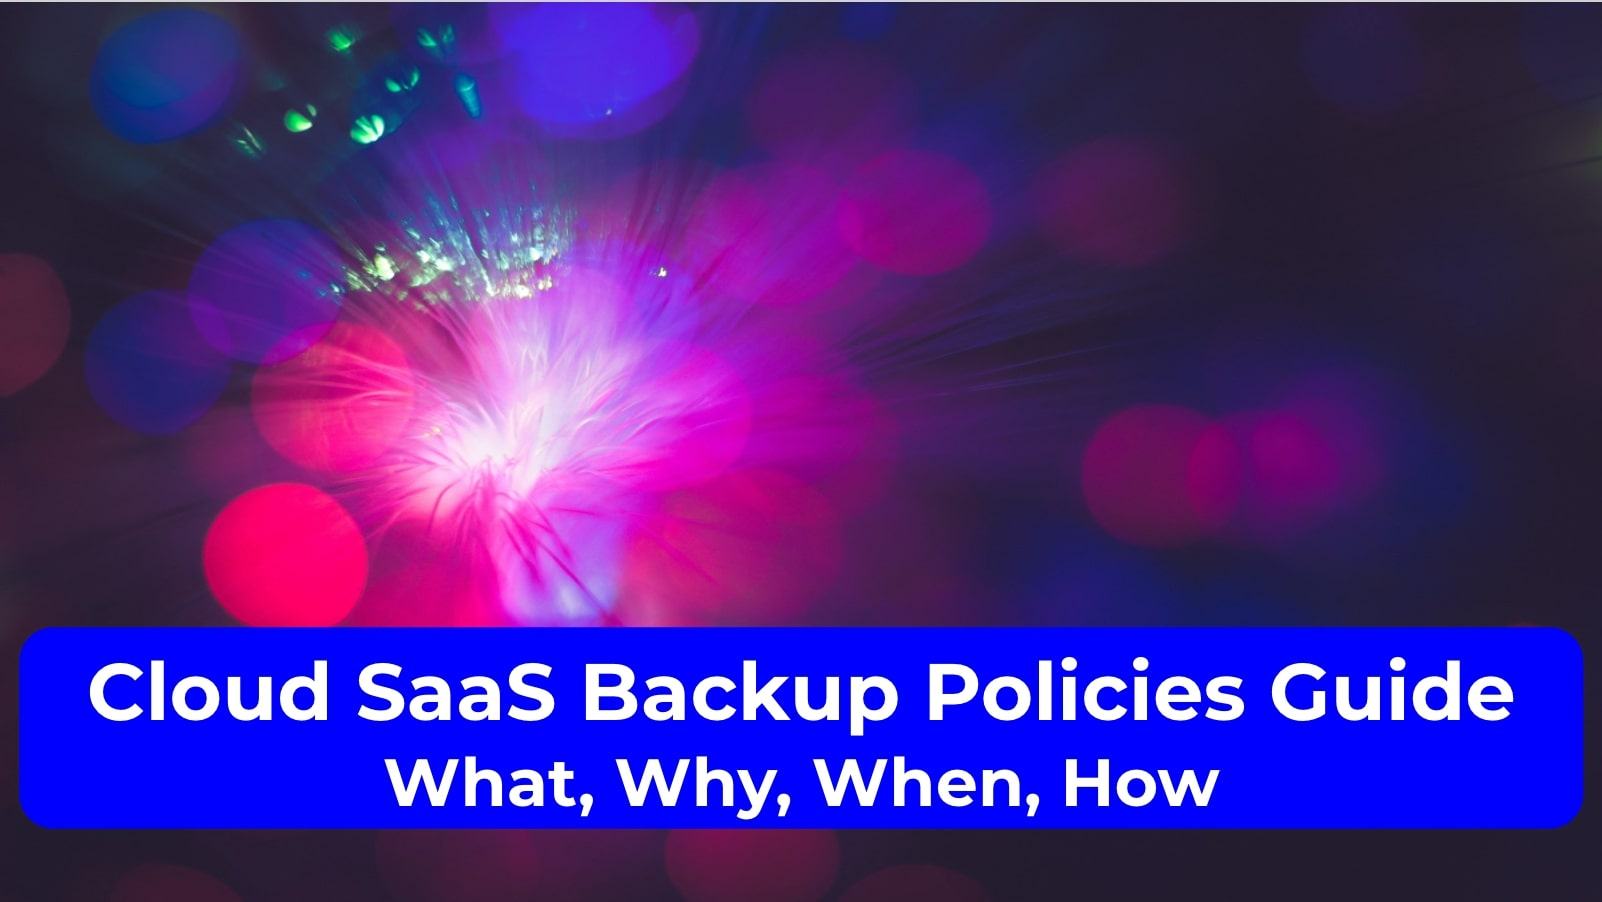 Cloud SaaS Backup Policies Guide: What, Why, When, How